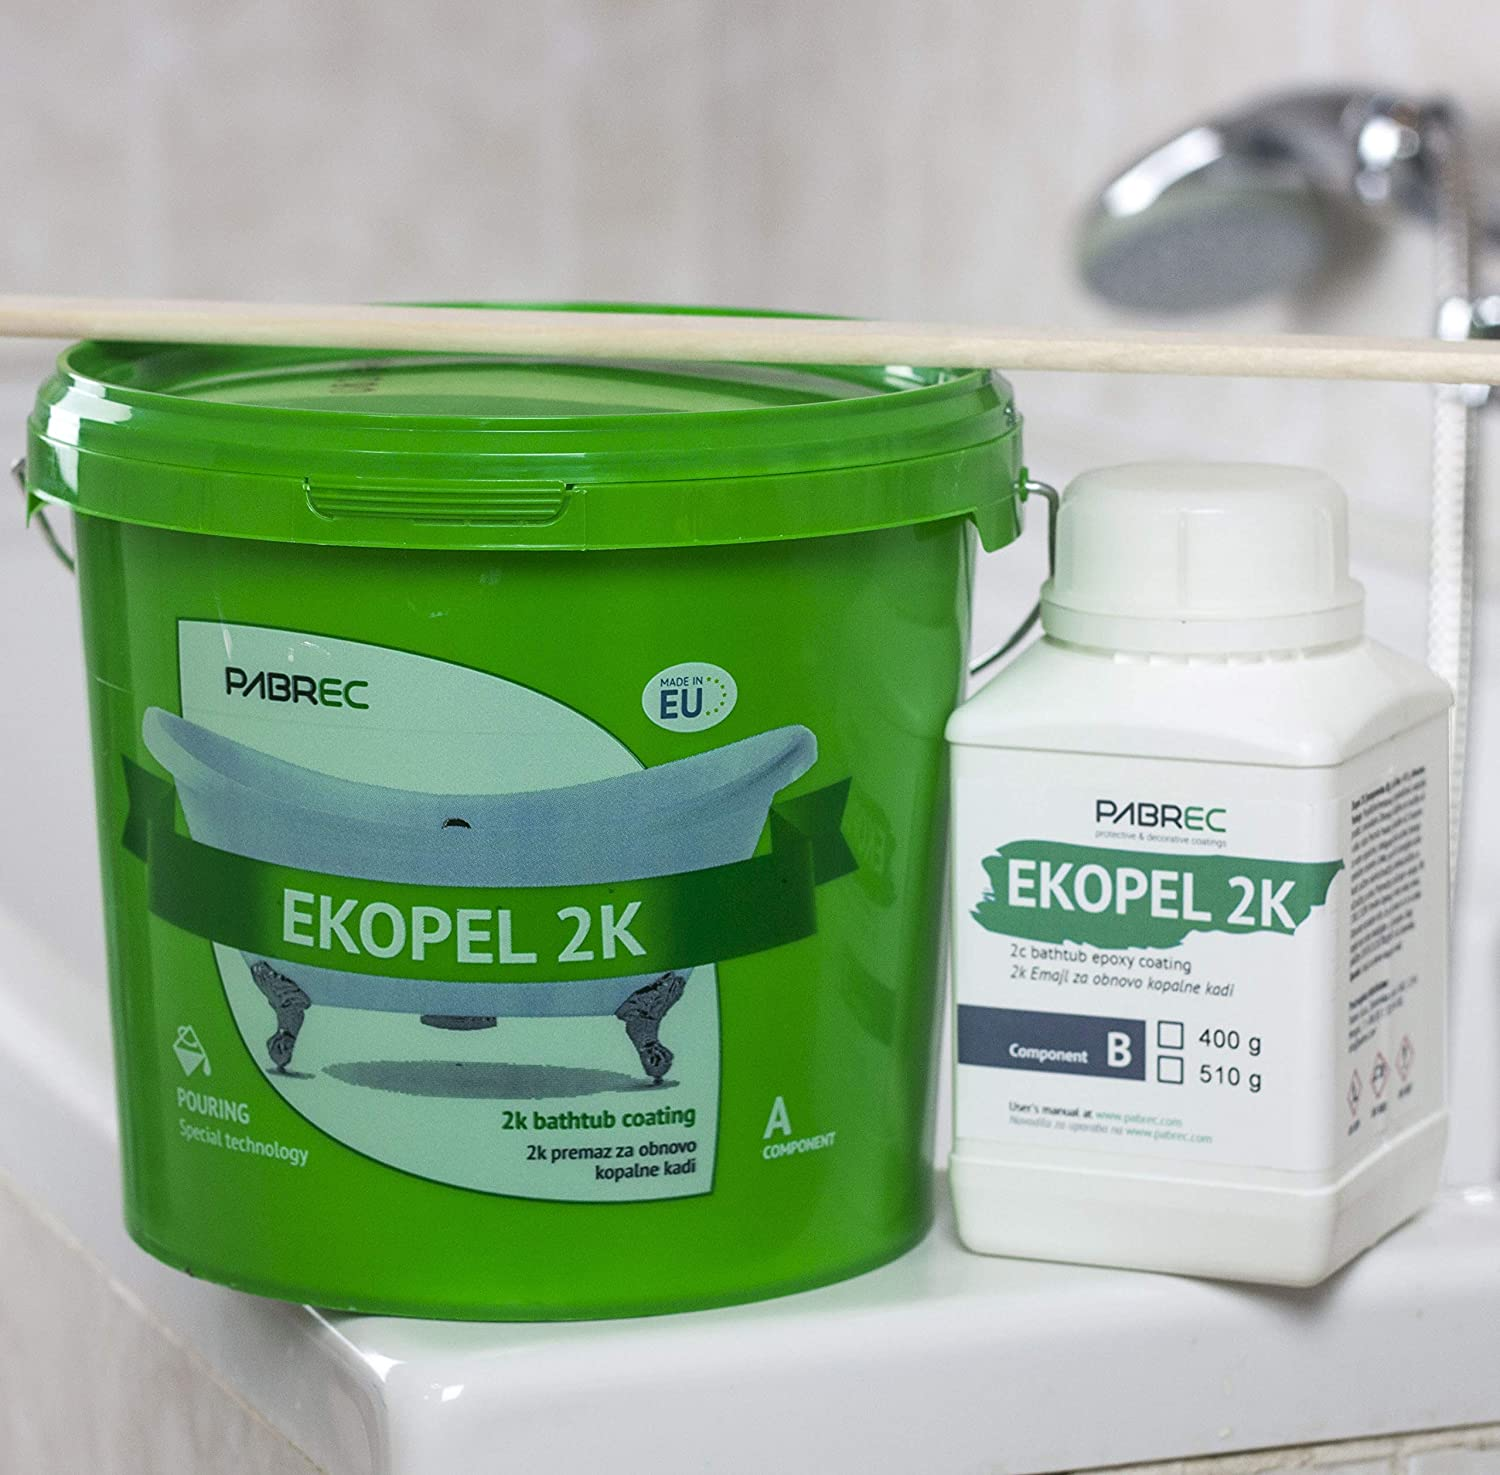 Ekopel 2k. Bathtub coating. 3400 g. Odourless. Just one layer is demanded. Pabrec